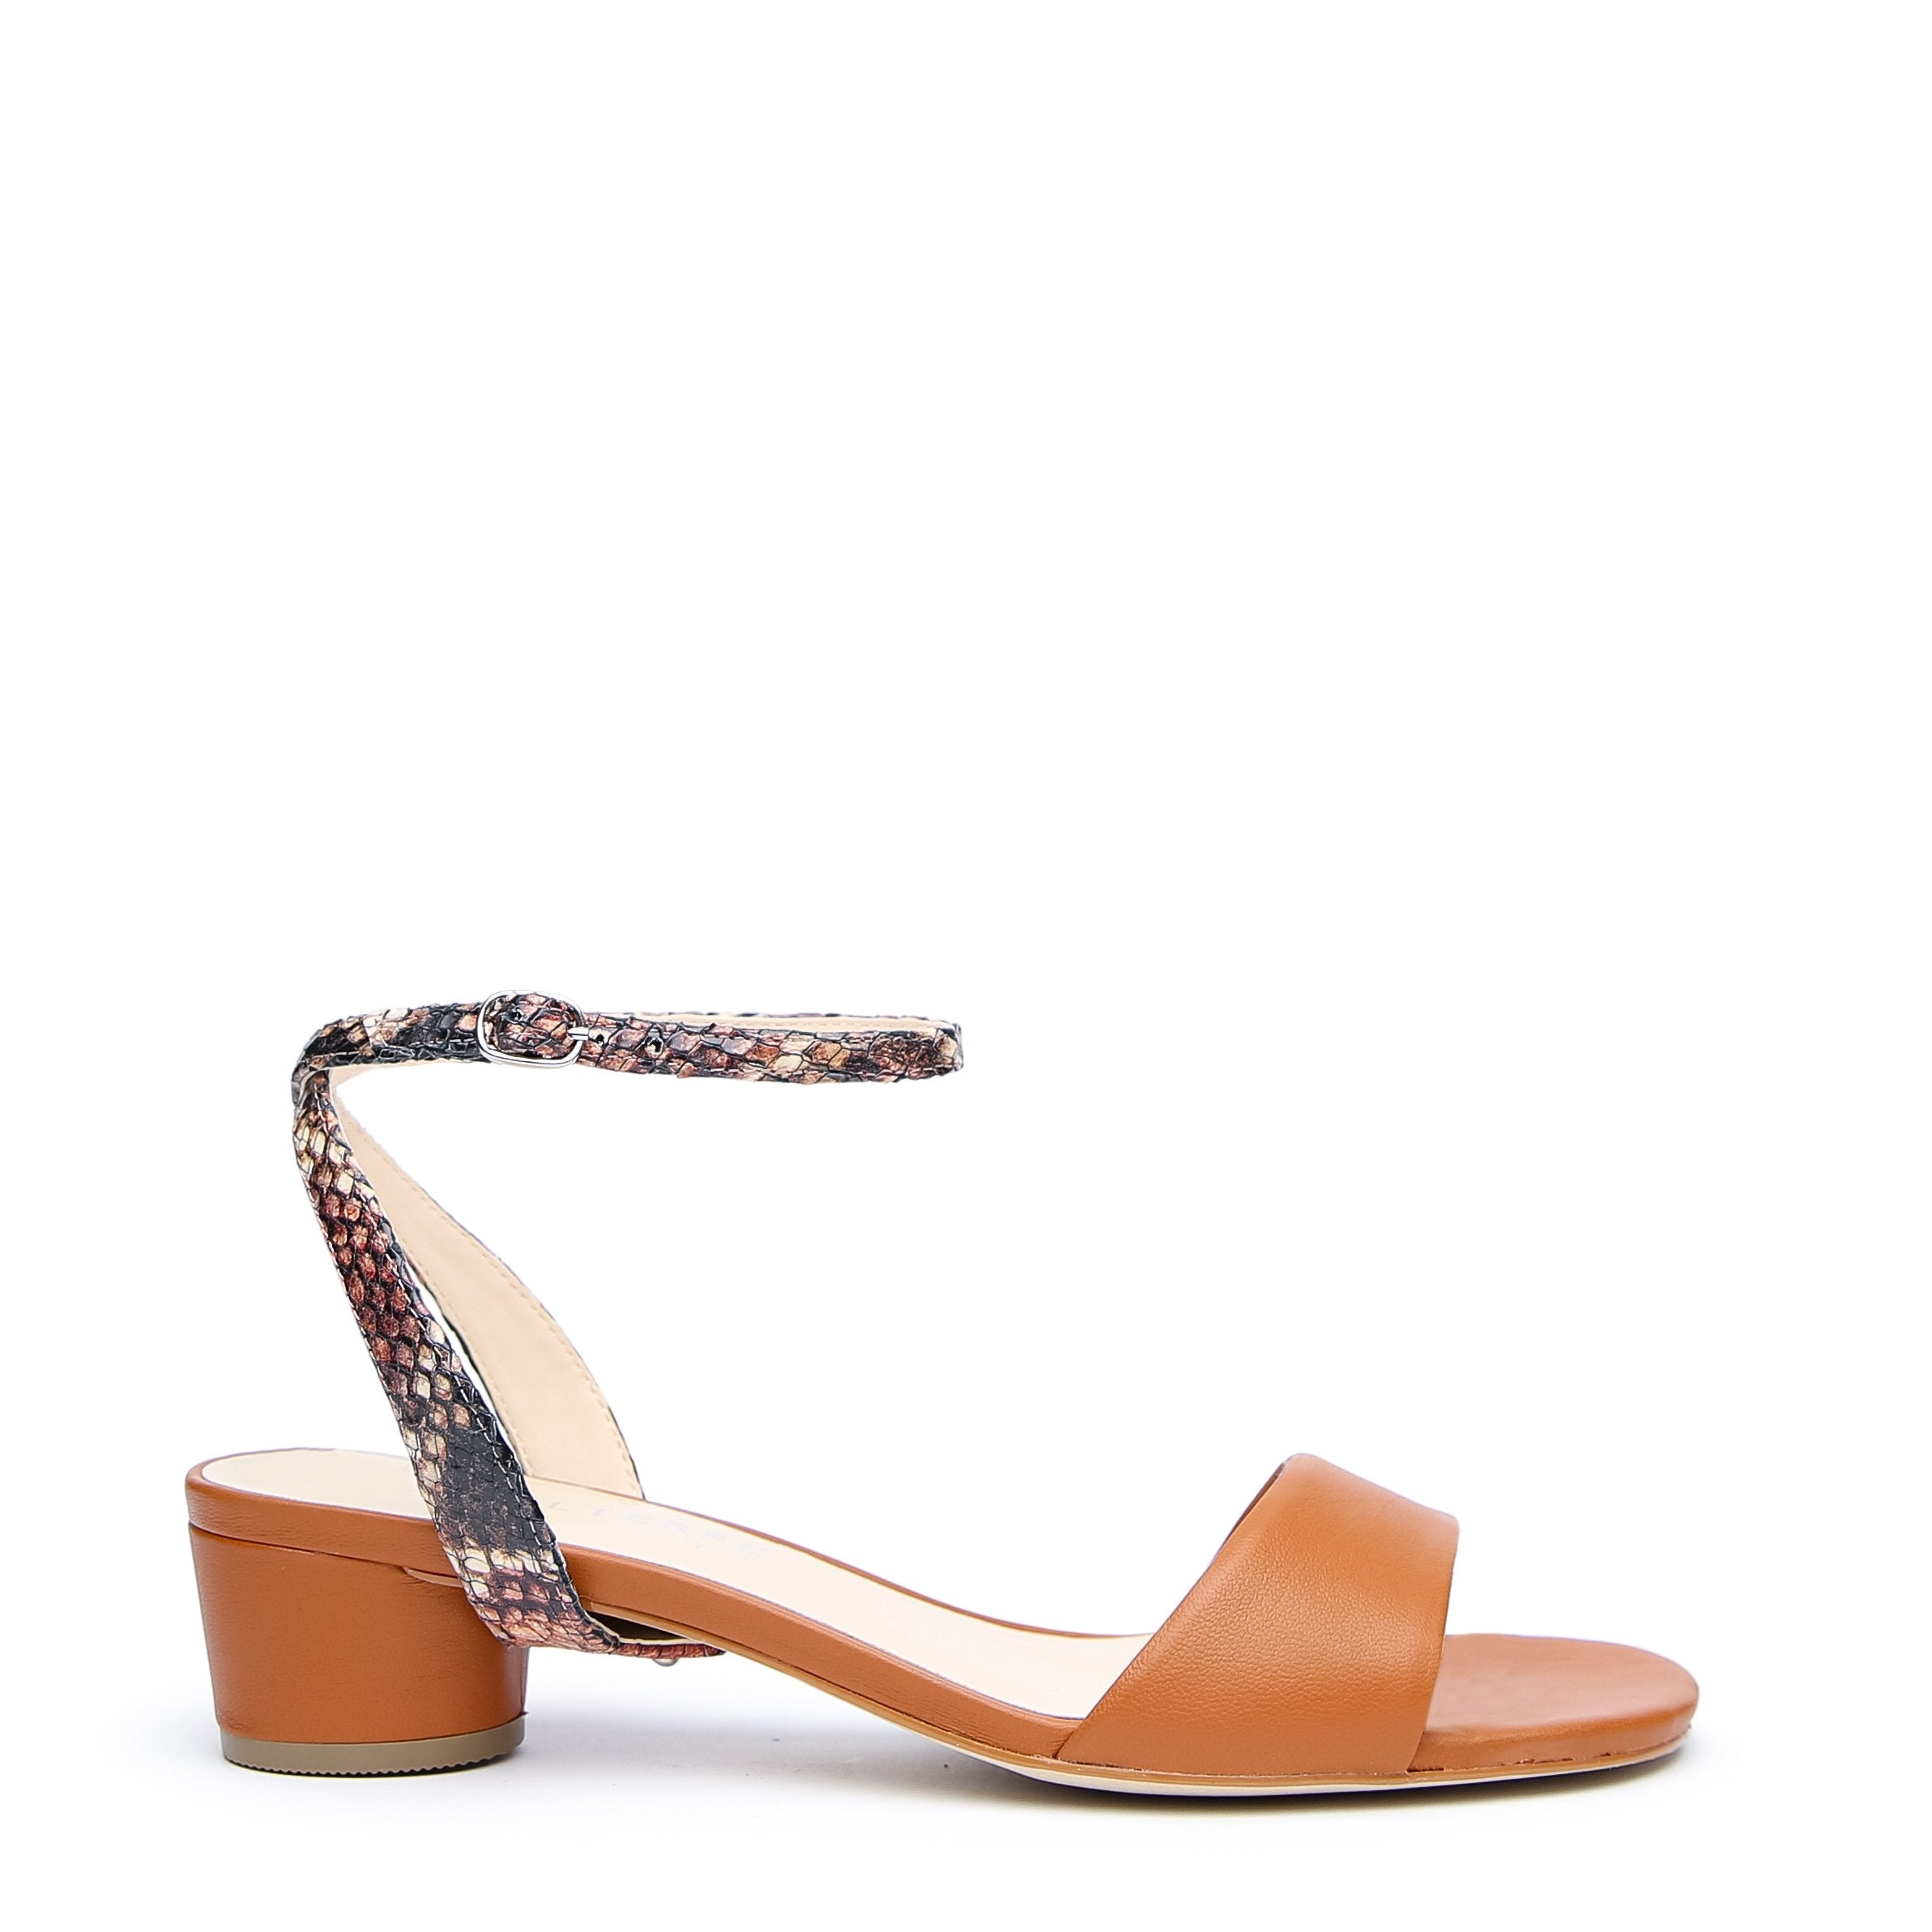 Brown Customized Sandals + Rosy Boa Marilyn Strap | Alterre Interchangeable Sandals - Sustainable Footwear & Ethical Shoes